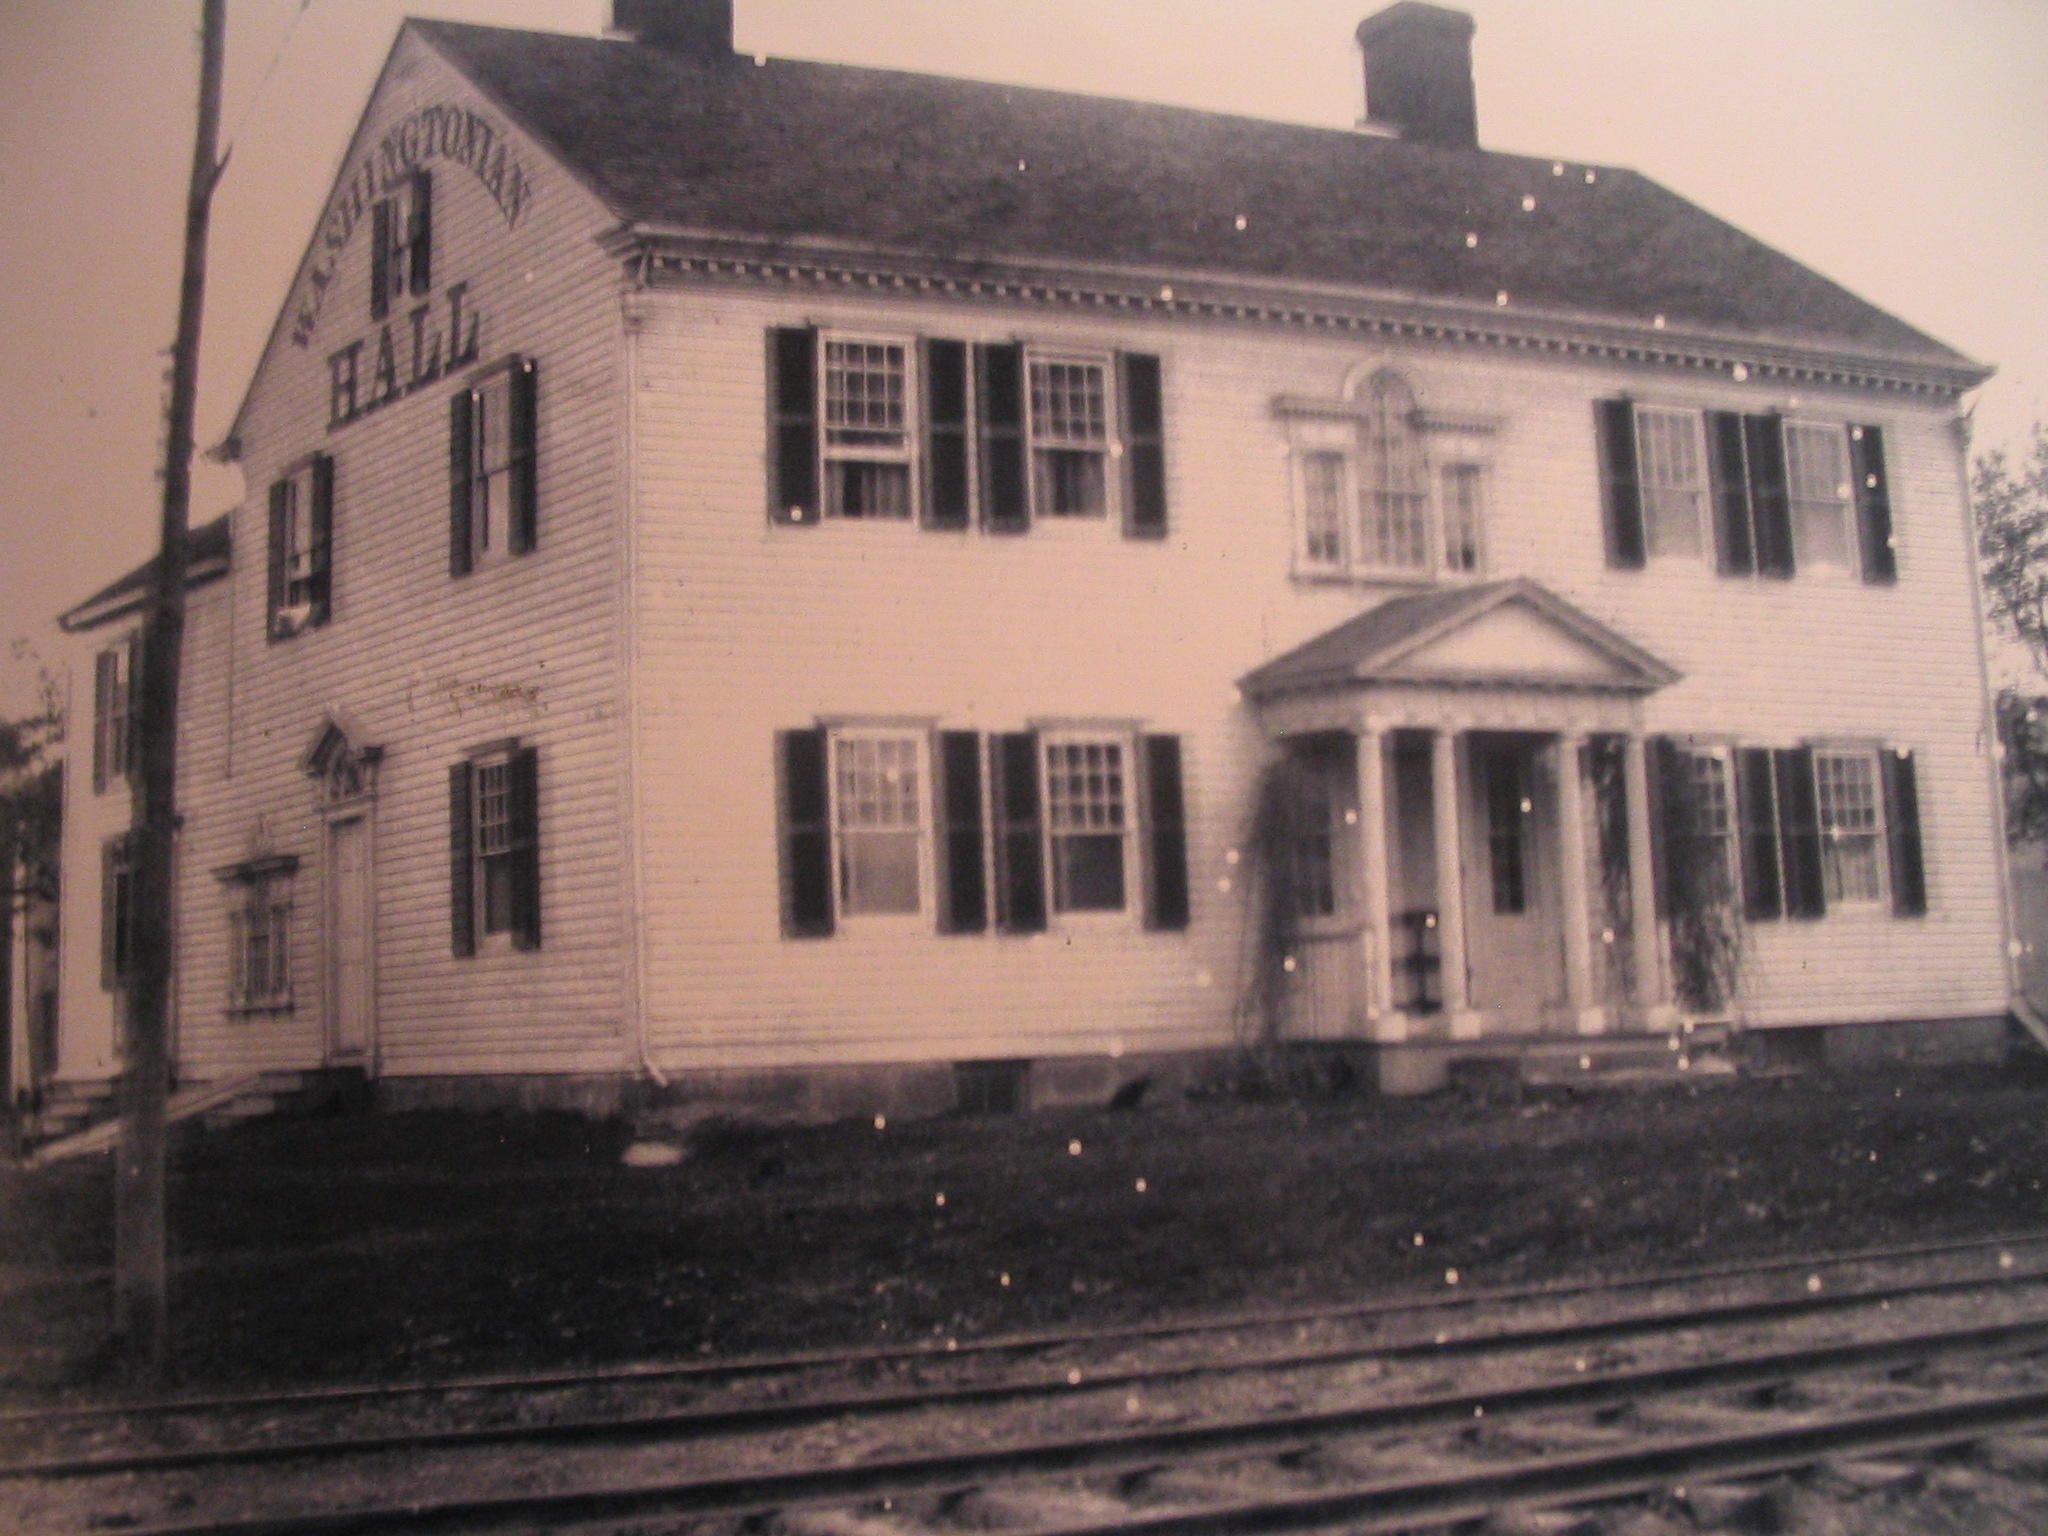 Picture of Washingtonian Hall during the time period when it was used as a Temperance Inn and Trolly Stop